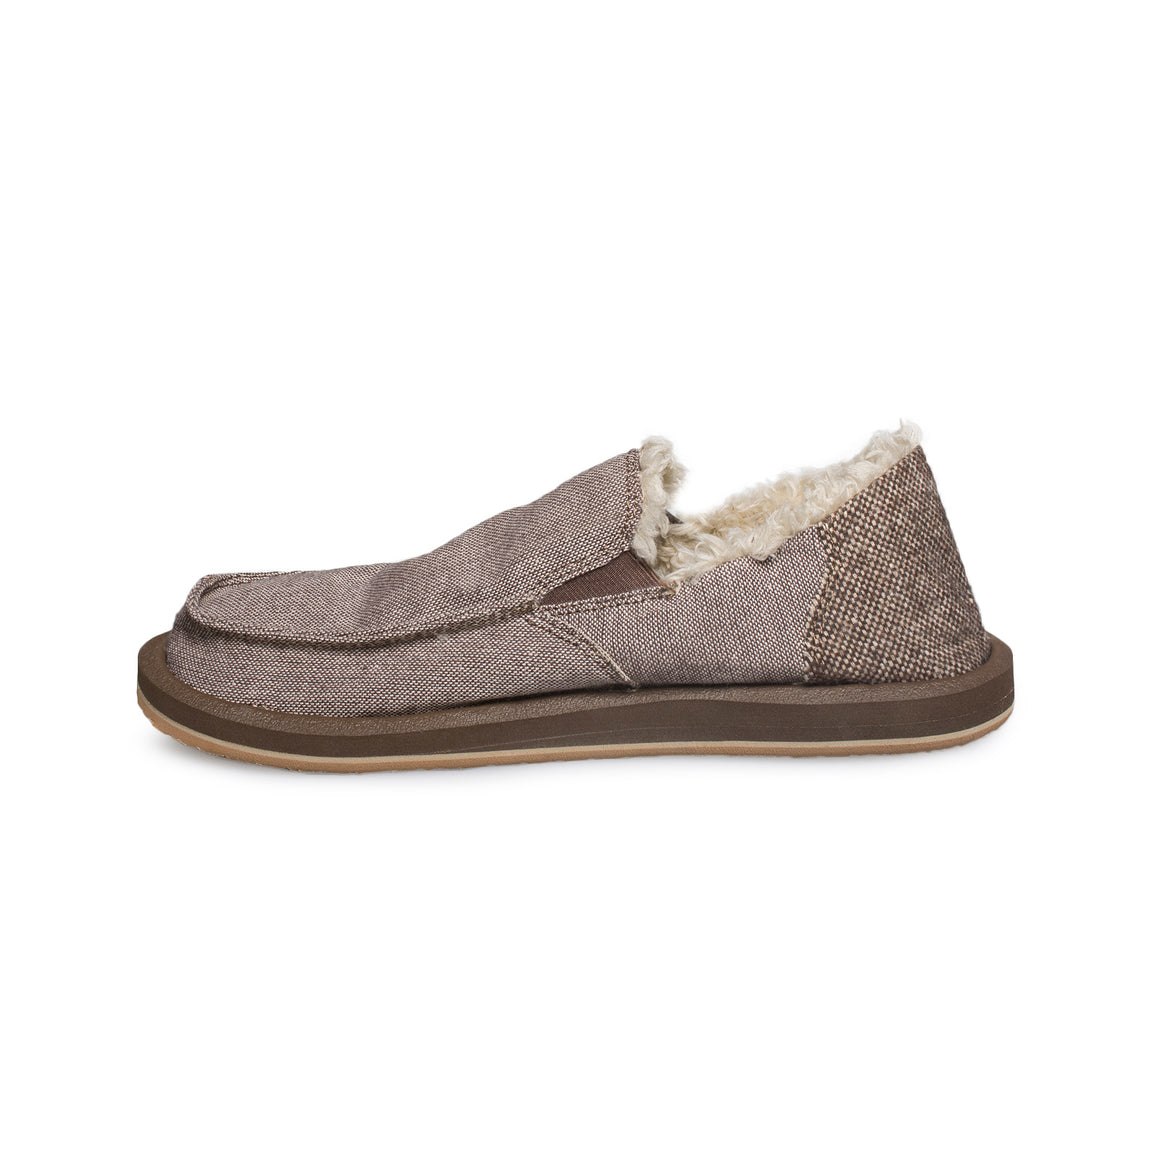 Sanuk Vagabond Chill Dark Brown Wool Fleck Shoes - Men's